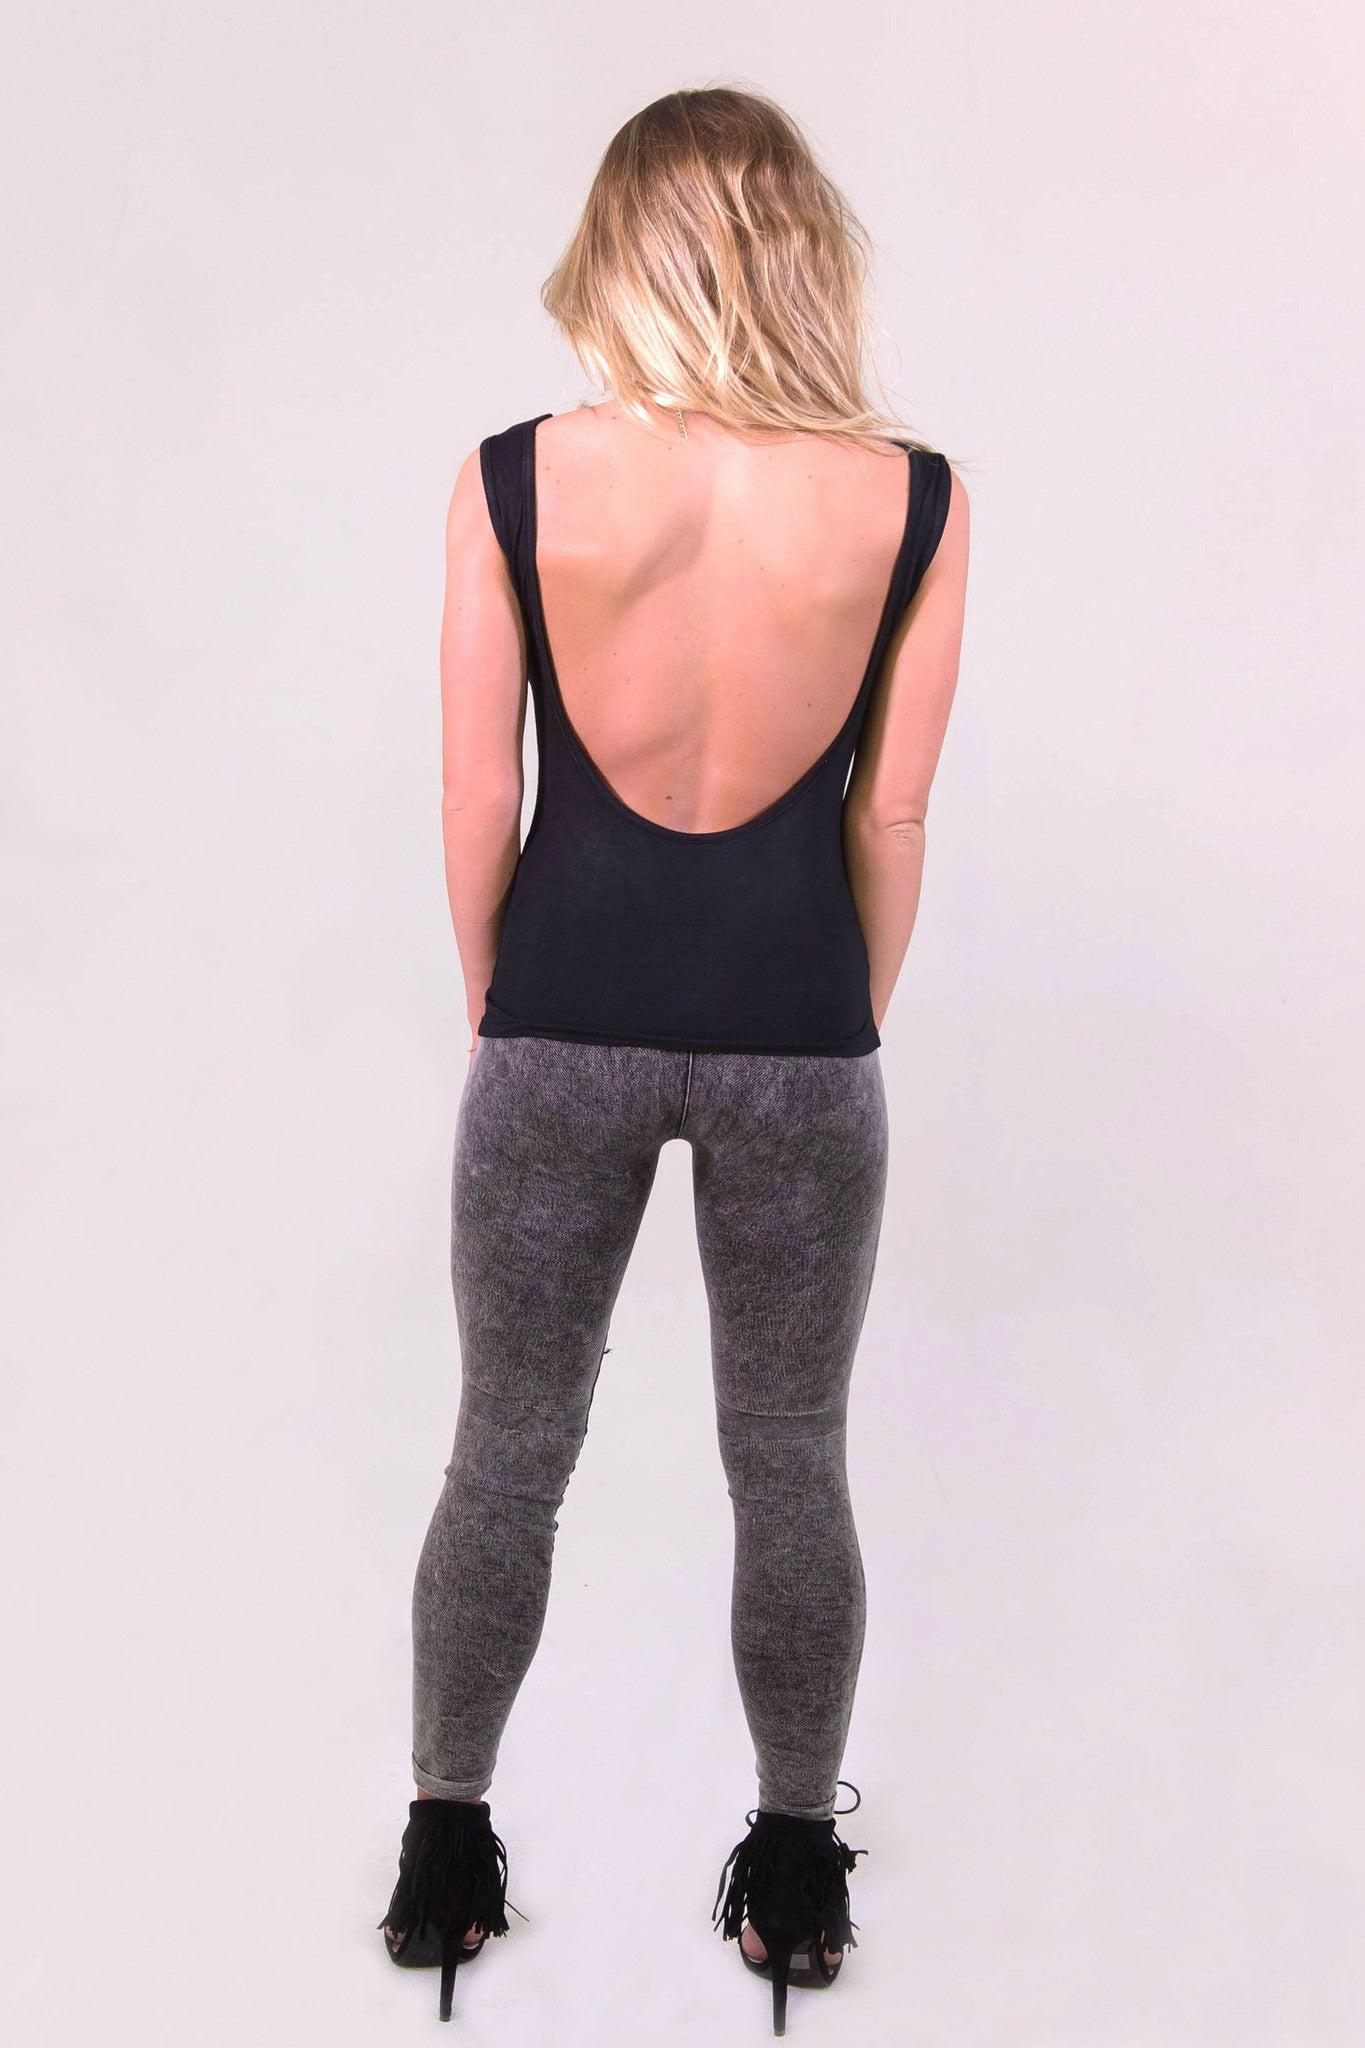 NikiBiki Vintage Ripped Leggings - Charcoal - BOTTOMS - NIKIBIKI - Free Vibrationz - 3